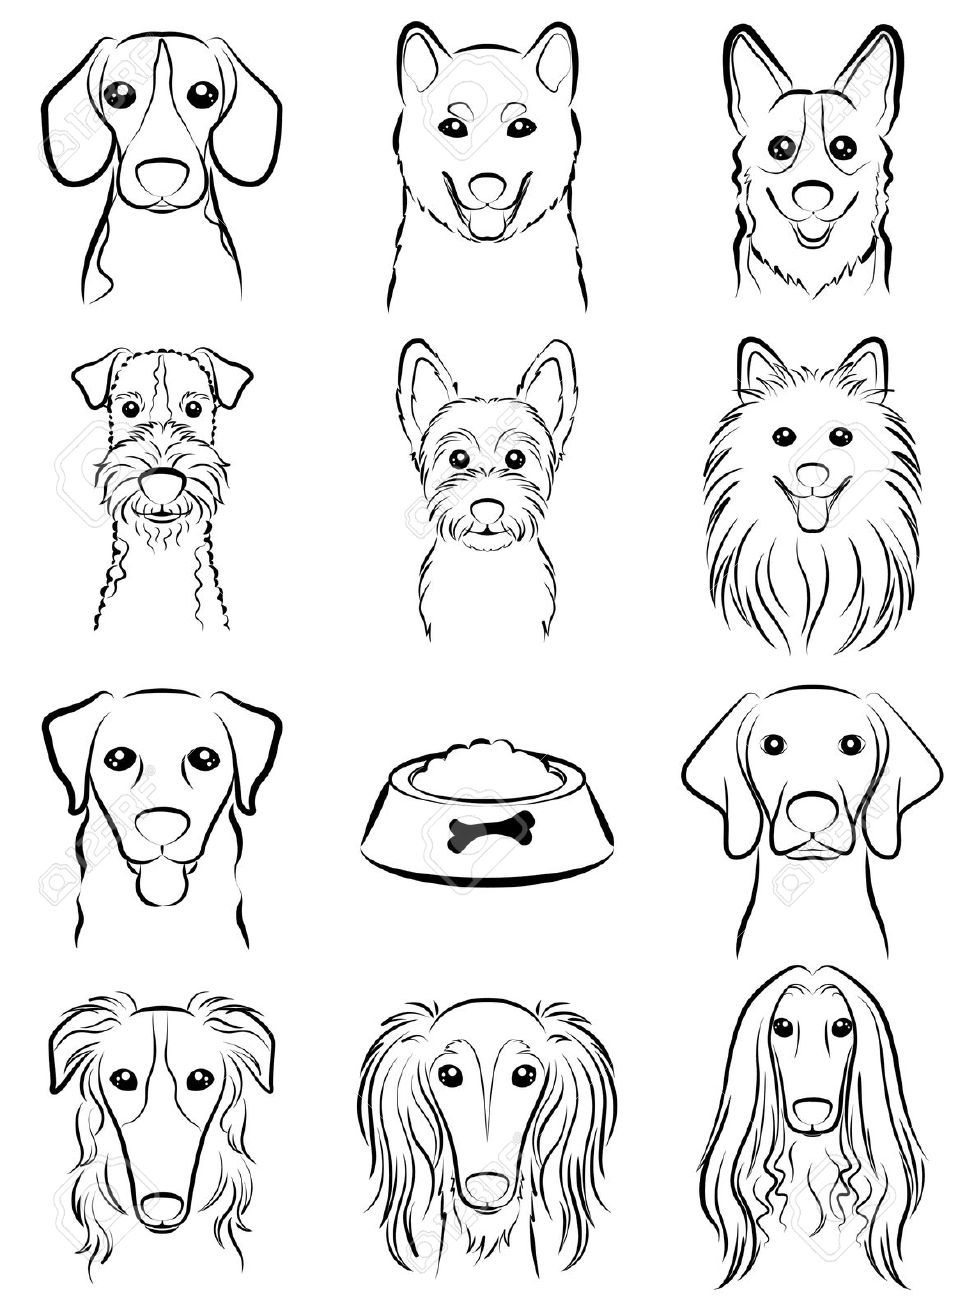 Line Drawing Of A Dog S Face : Dog line drawing royalty free cliparts vectors and